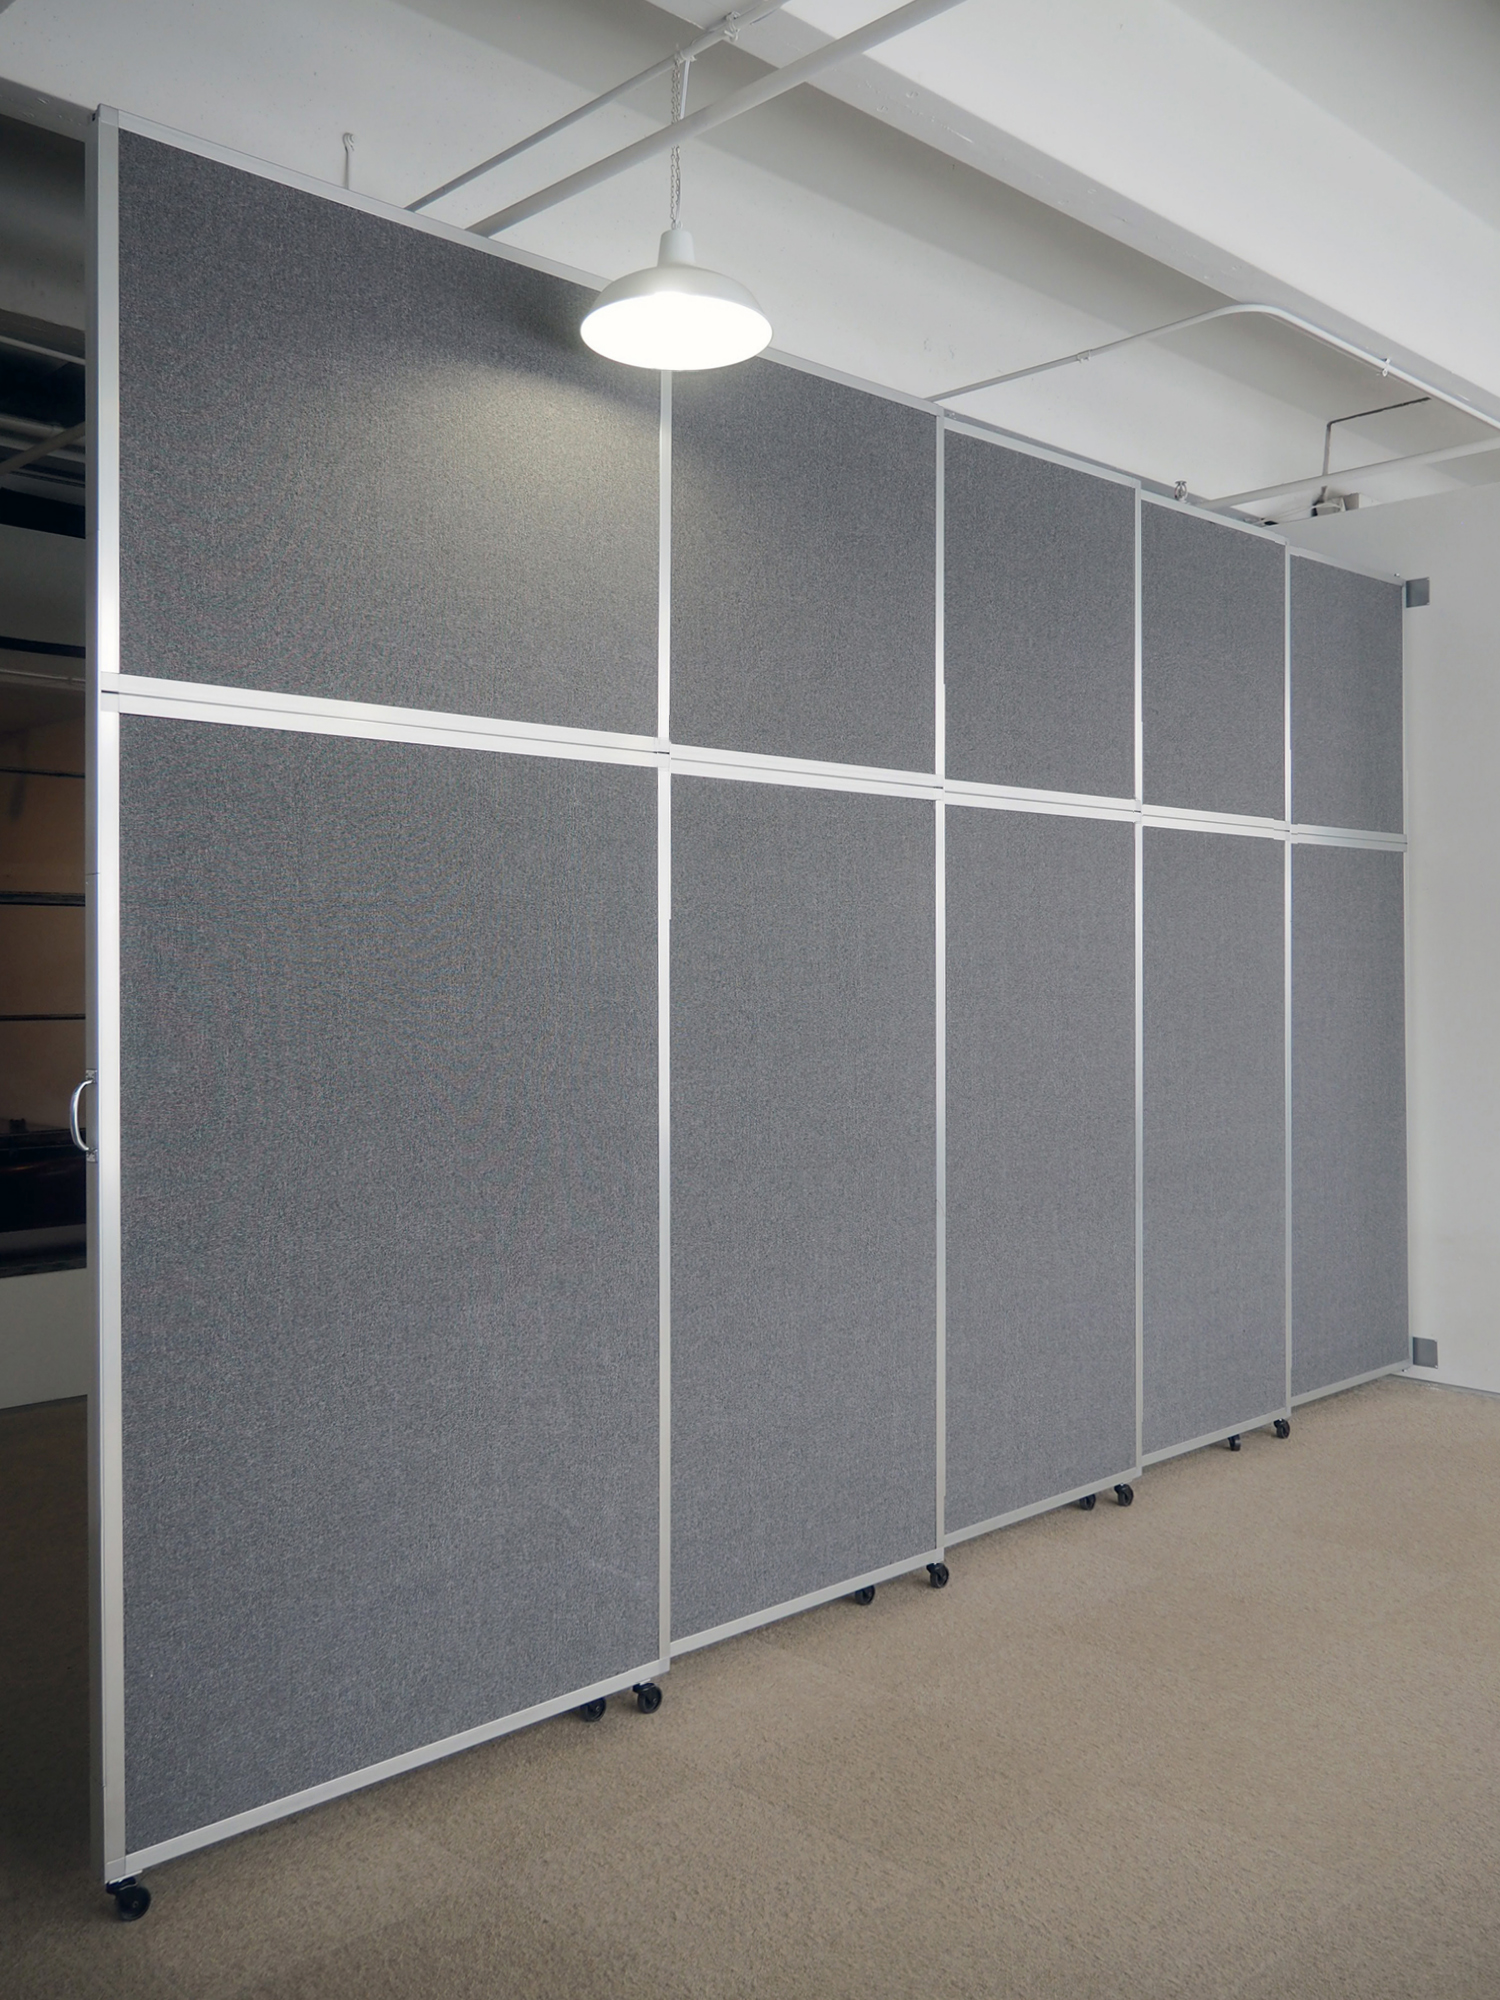 Wall room divider versare operable wall large room dividers reach new heights room divider 360 - Appealing image of home interior design with various walmart room dividers ...